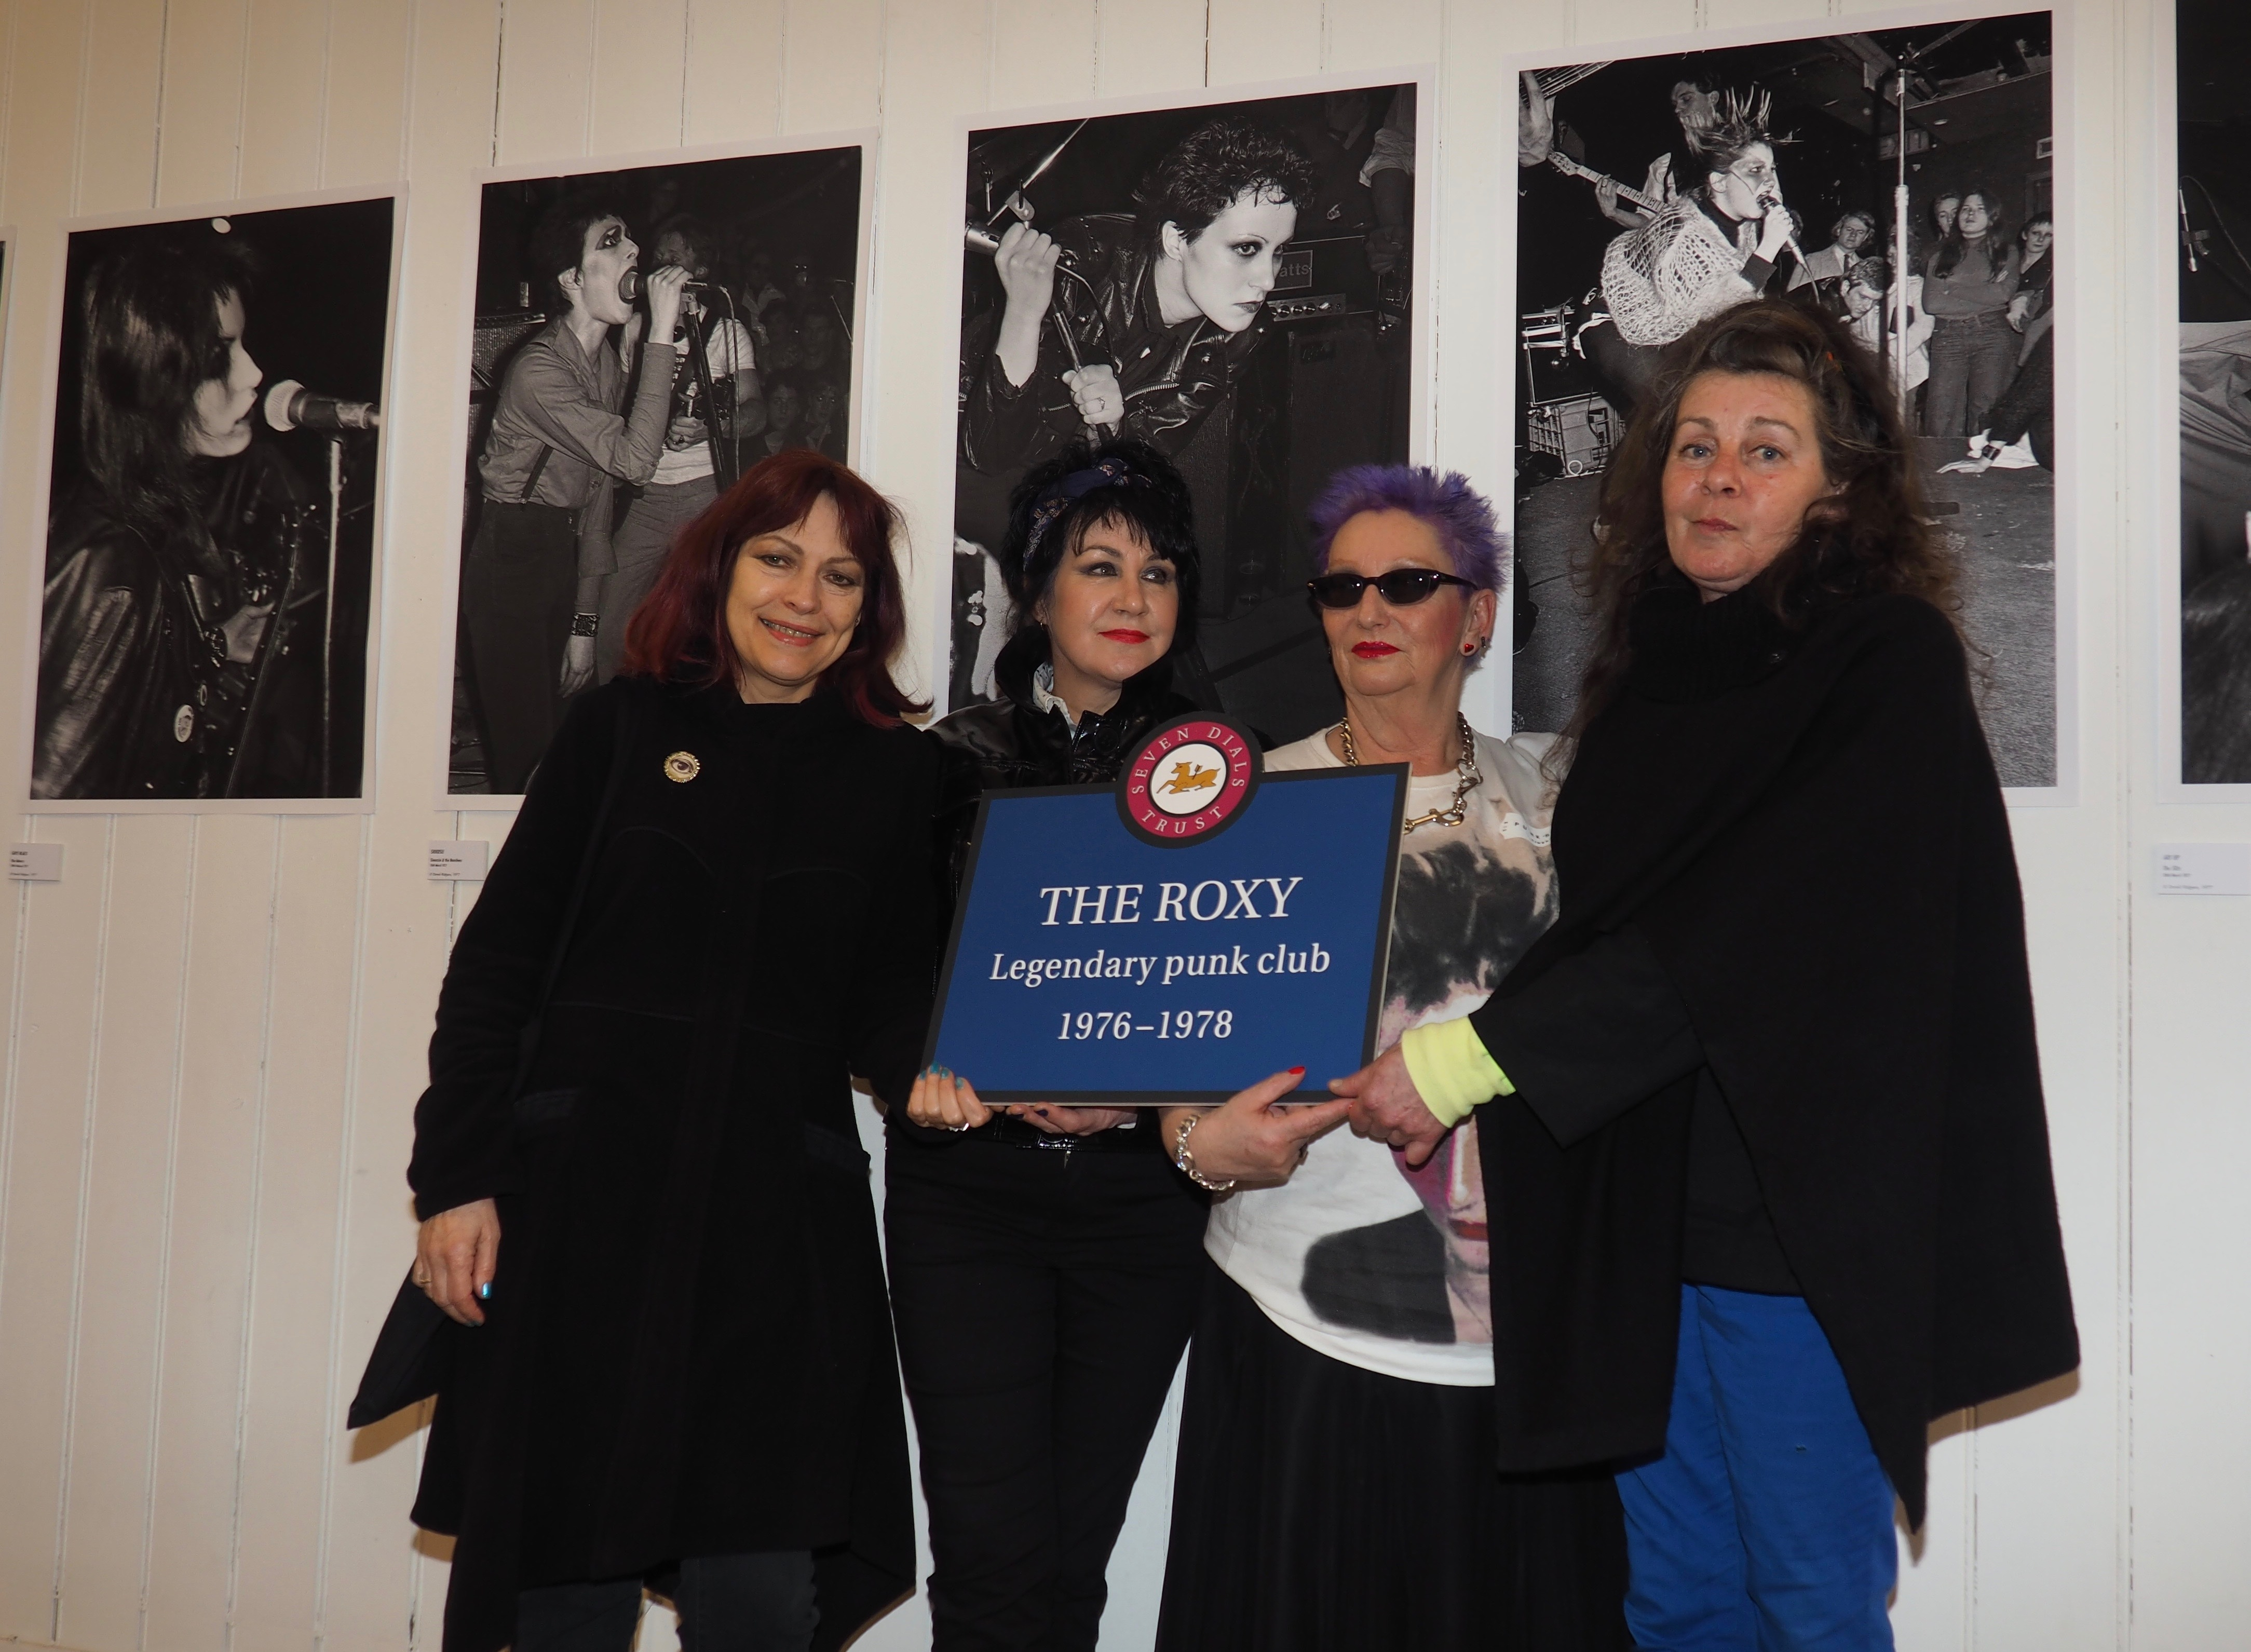 Punk icons holding the plaque to legendary Roxy club at the unveiling ceremony and exhibition on Tuesday 25th April 2017 @SevenDialsTrust in Covent Garden